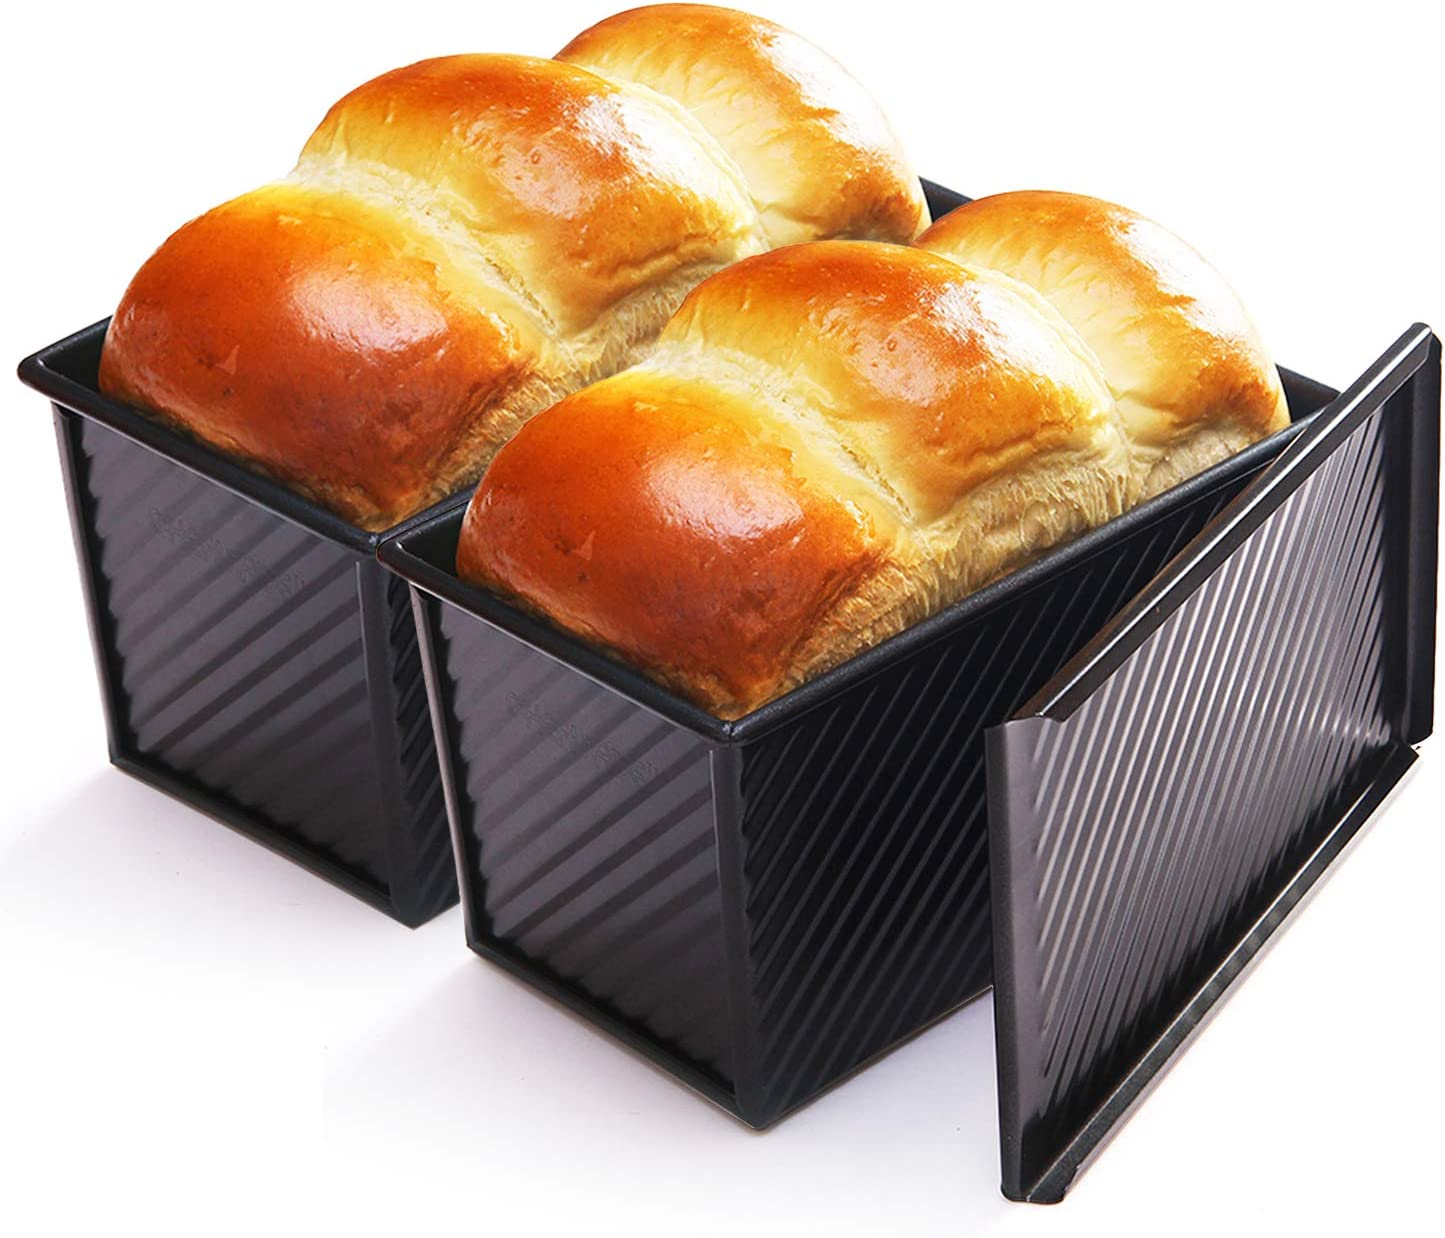 CHEFMADE Loaf Pan 2 Pcs, Non-Stick Bread Pan Carbon Steel Toast Pan with Cover for Baking Bread FDA Approved - Black